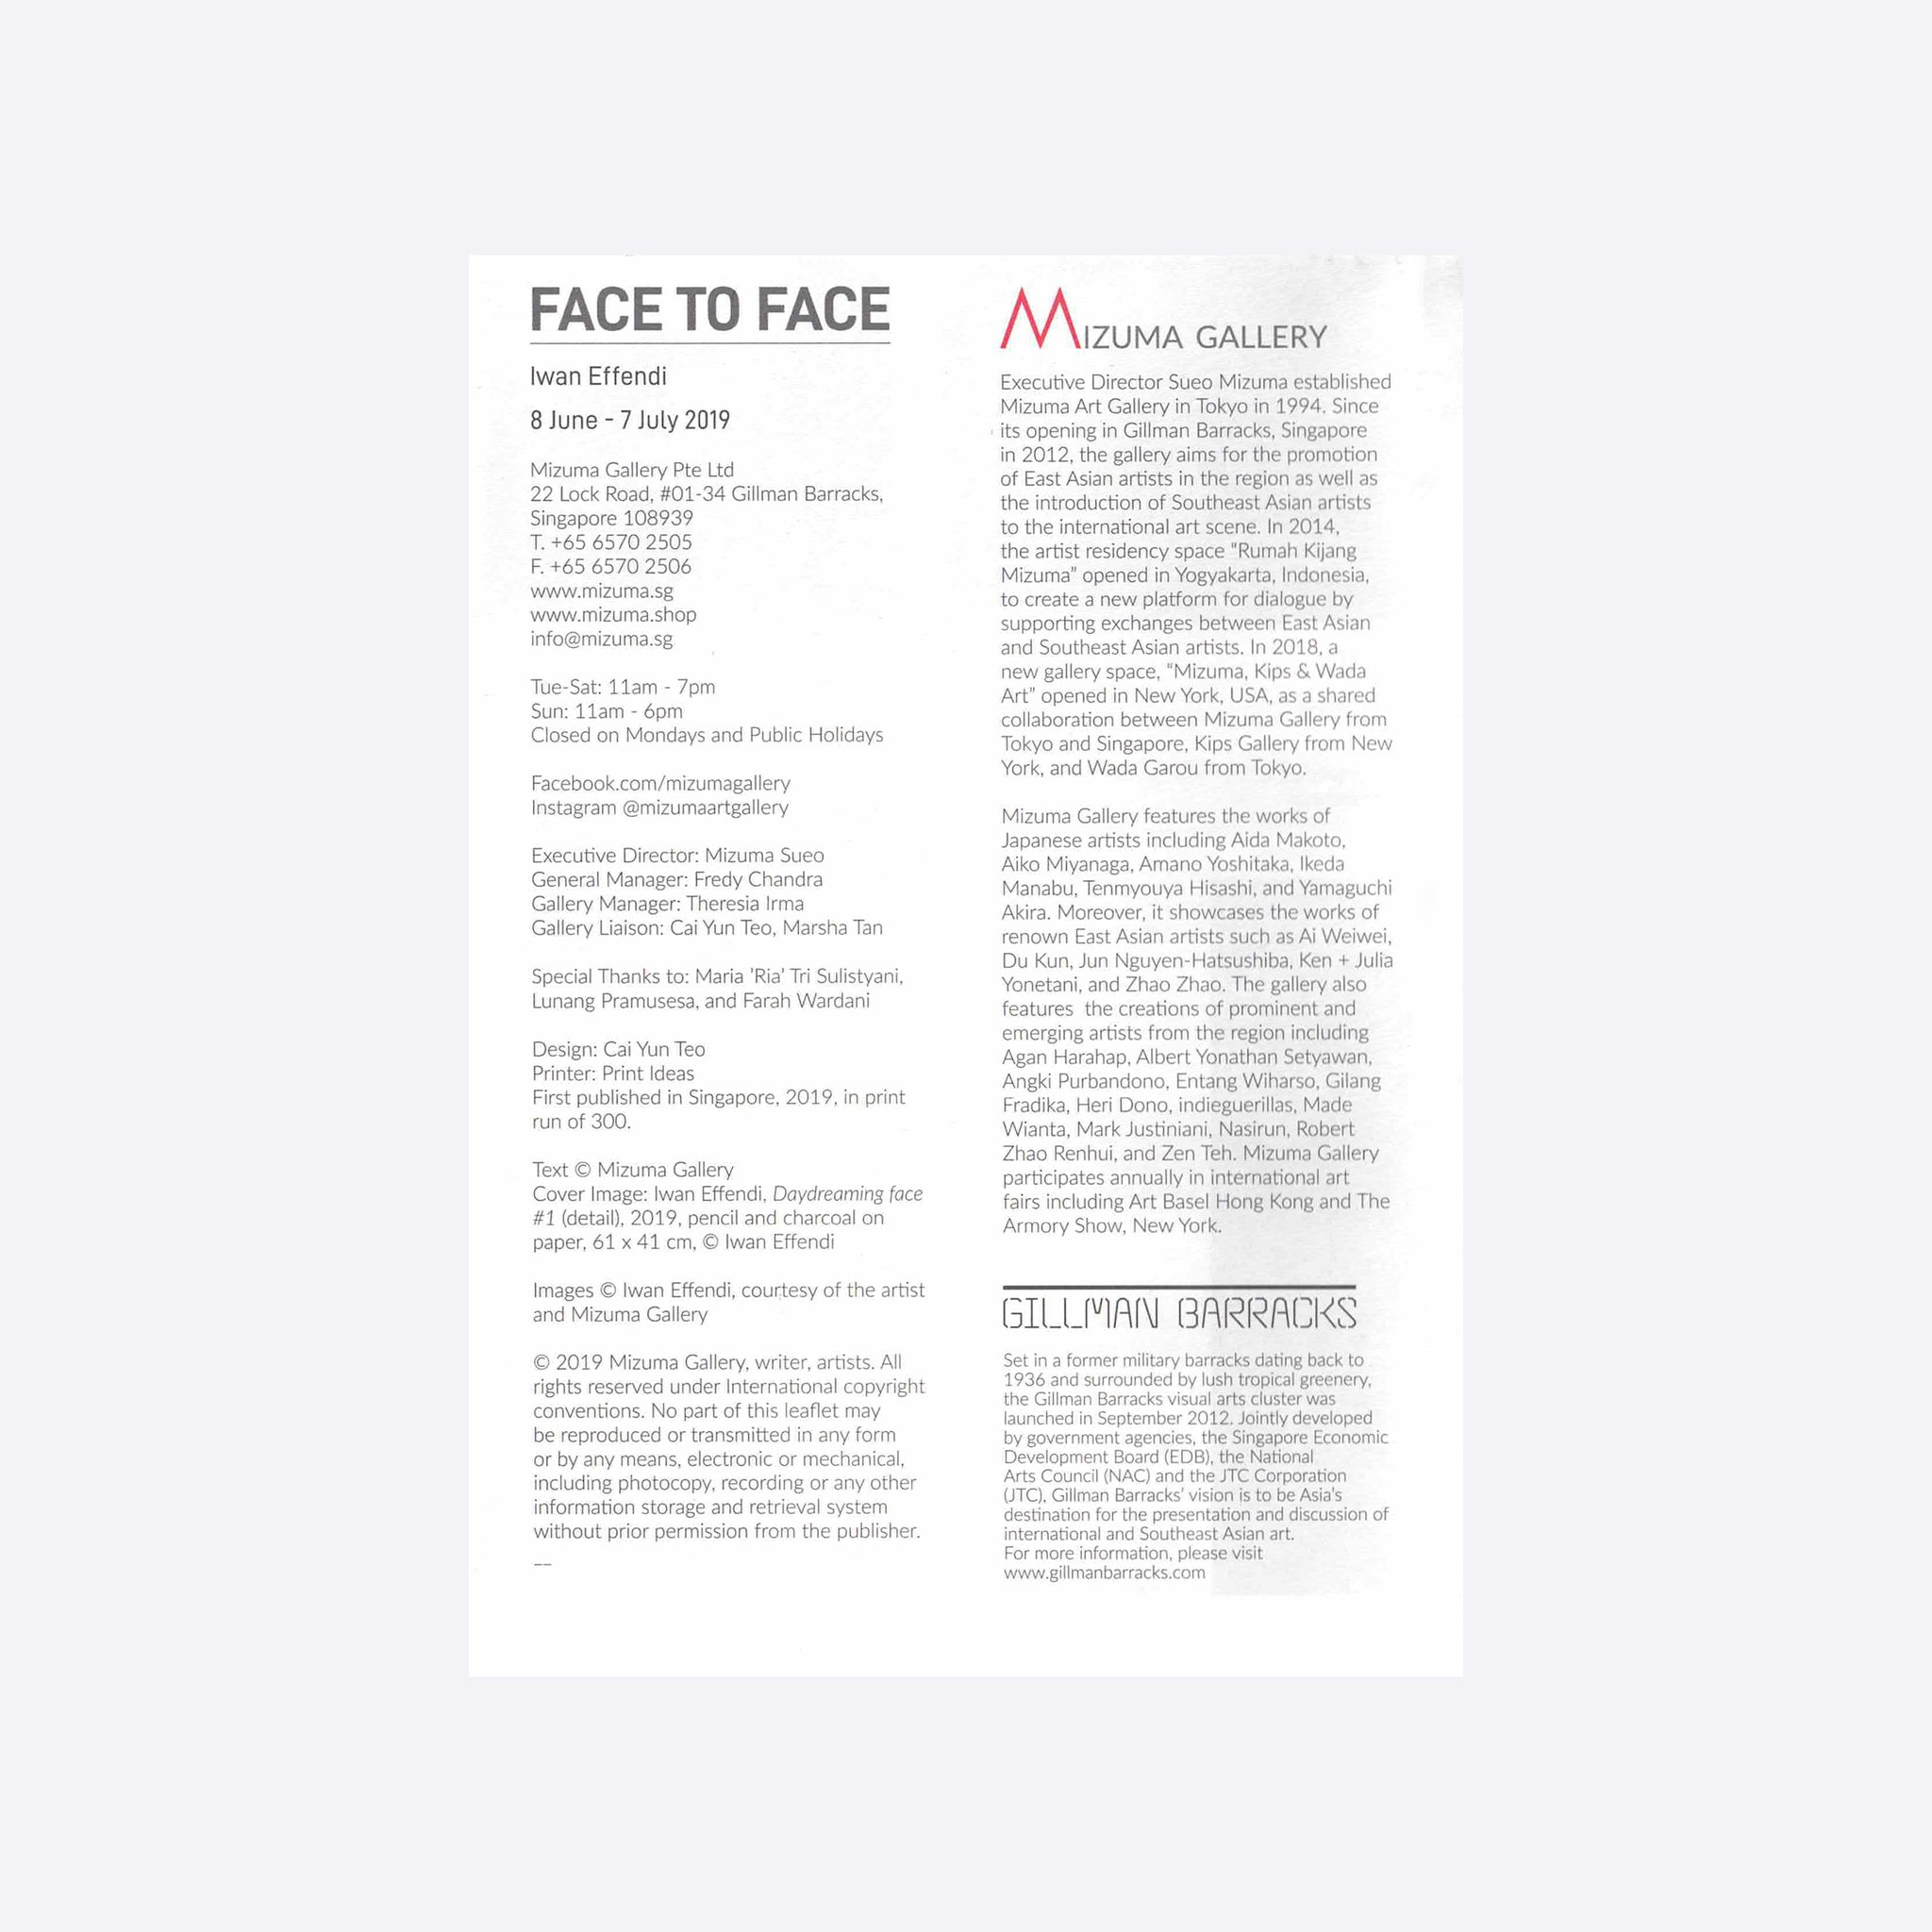 Face to Face Catalogue